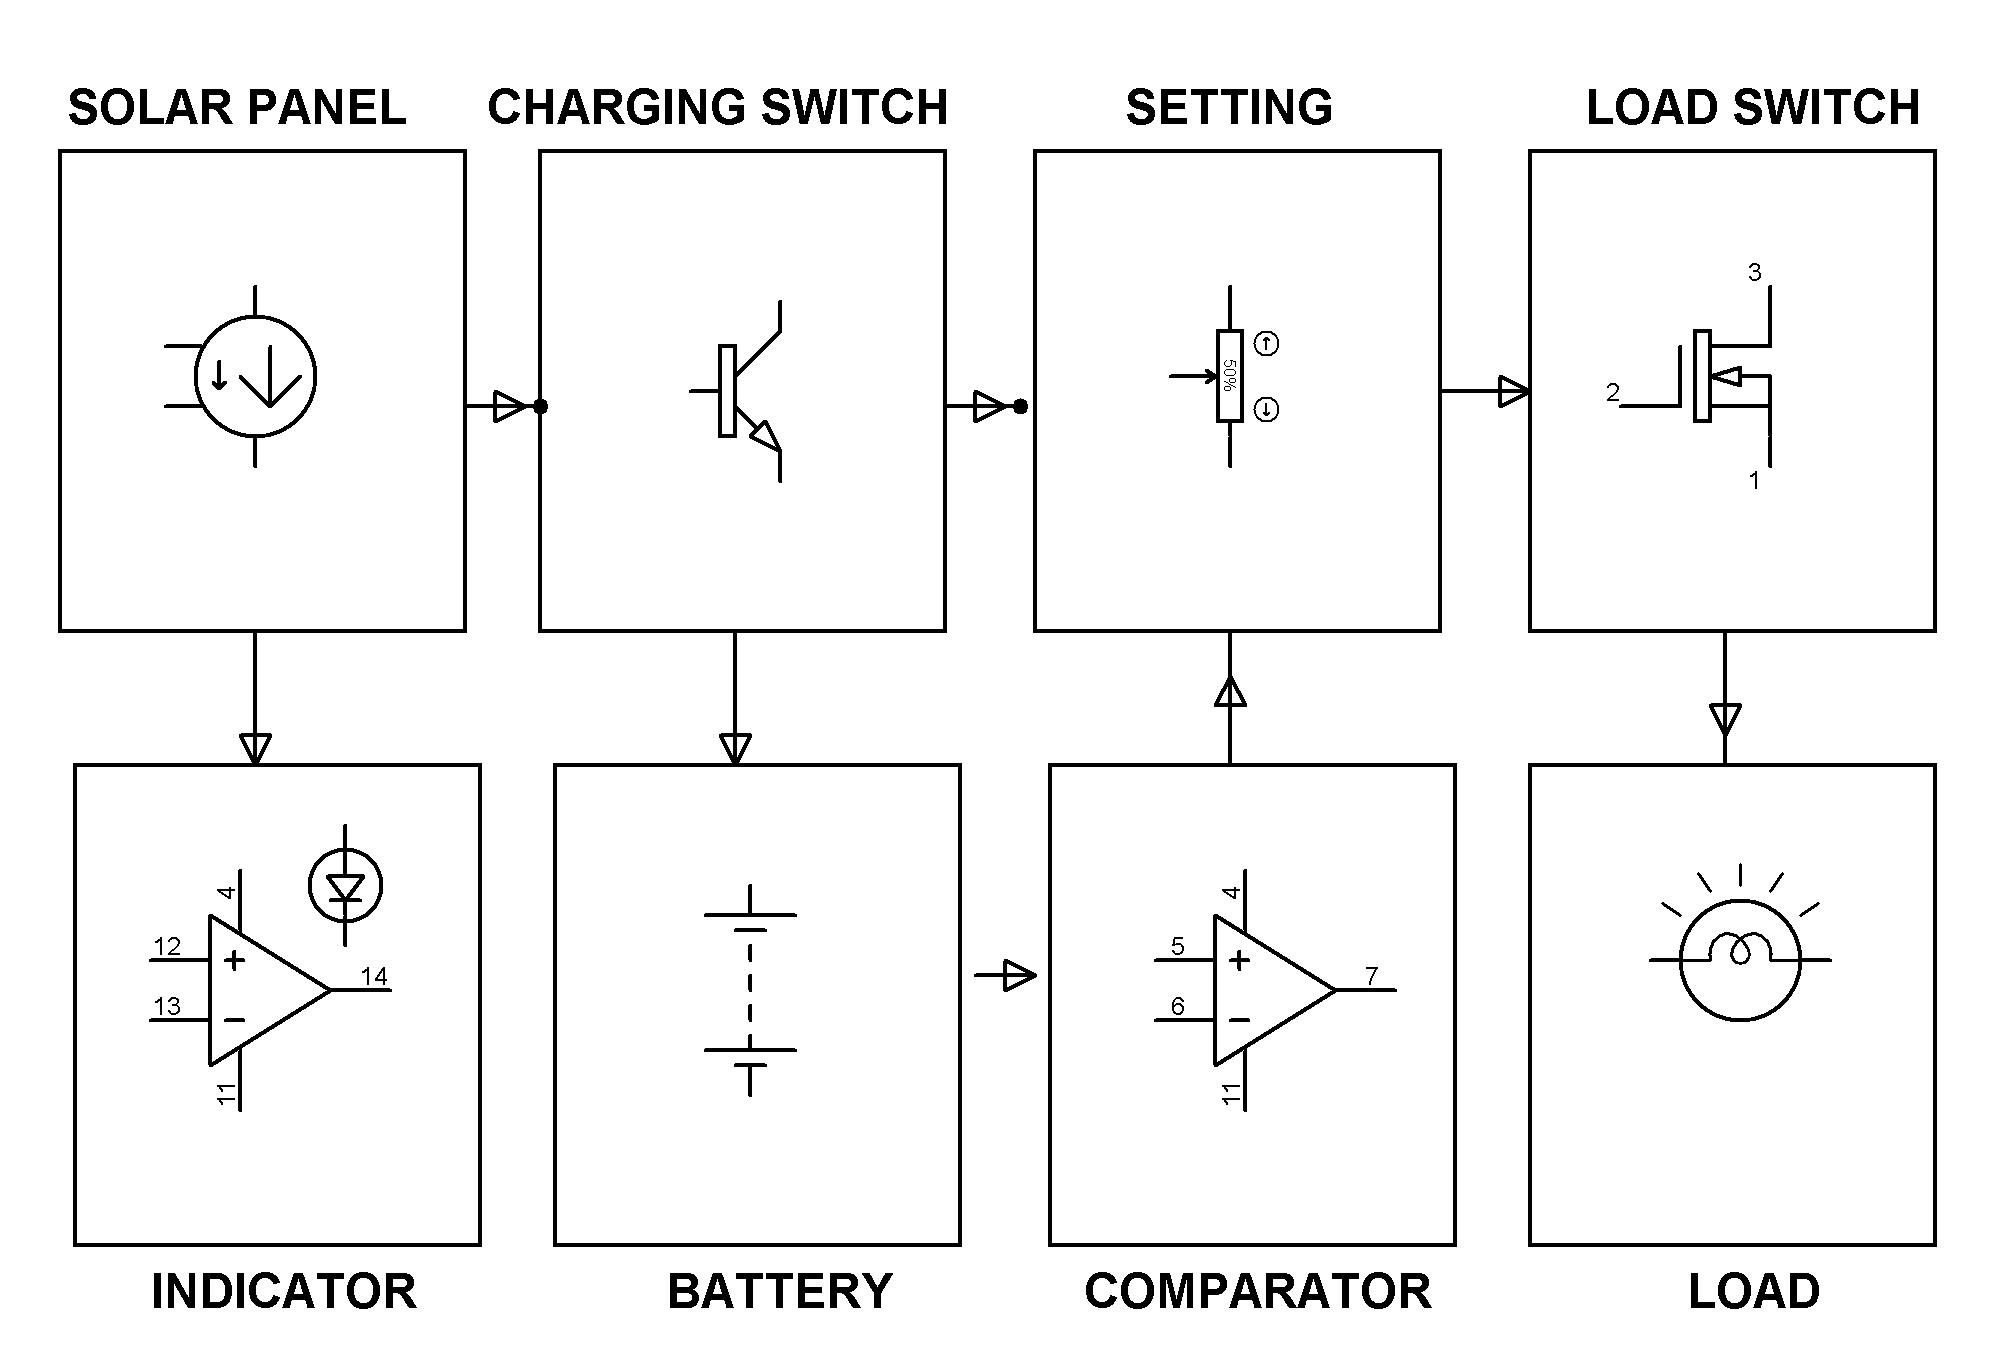 Unusual Core Switch Diagram Tiny Ibanez 5 Way Switch Wiring Rectangular Ibanez Wiring Ibanez Guitar Wiring Young Security Diagram Yellow3 Coil Pickup Simple Solar Charger Controller | Battery Charging | Pinterest ..